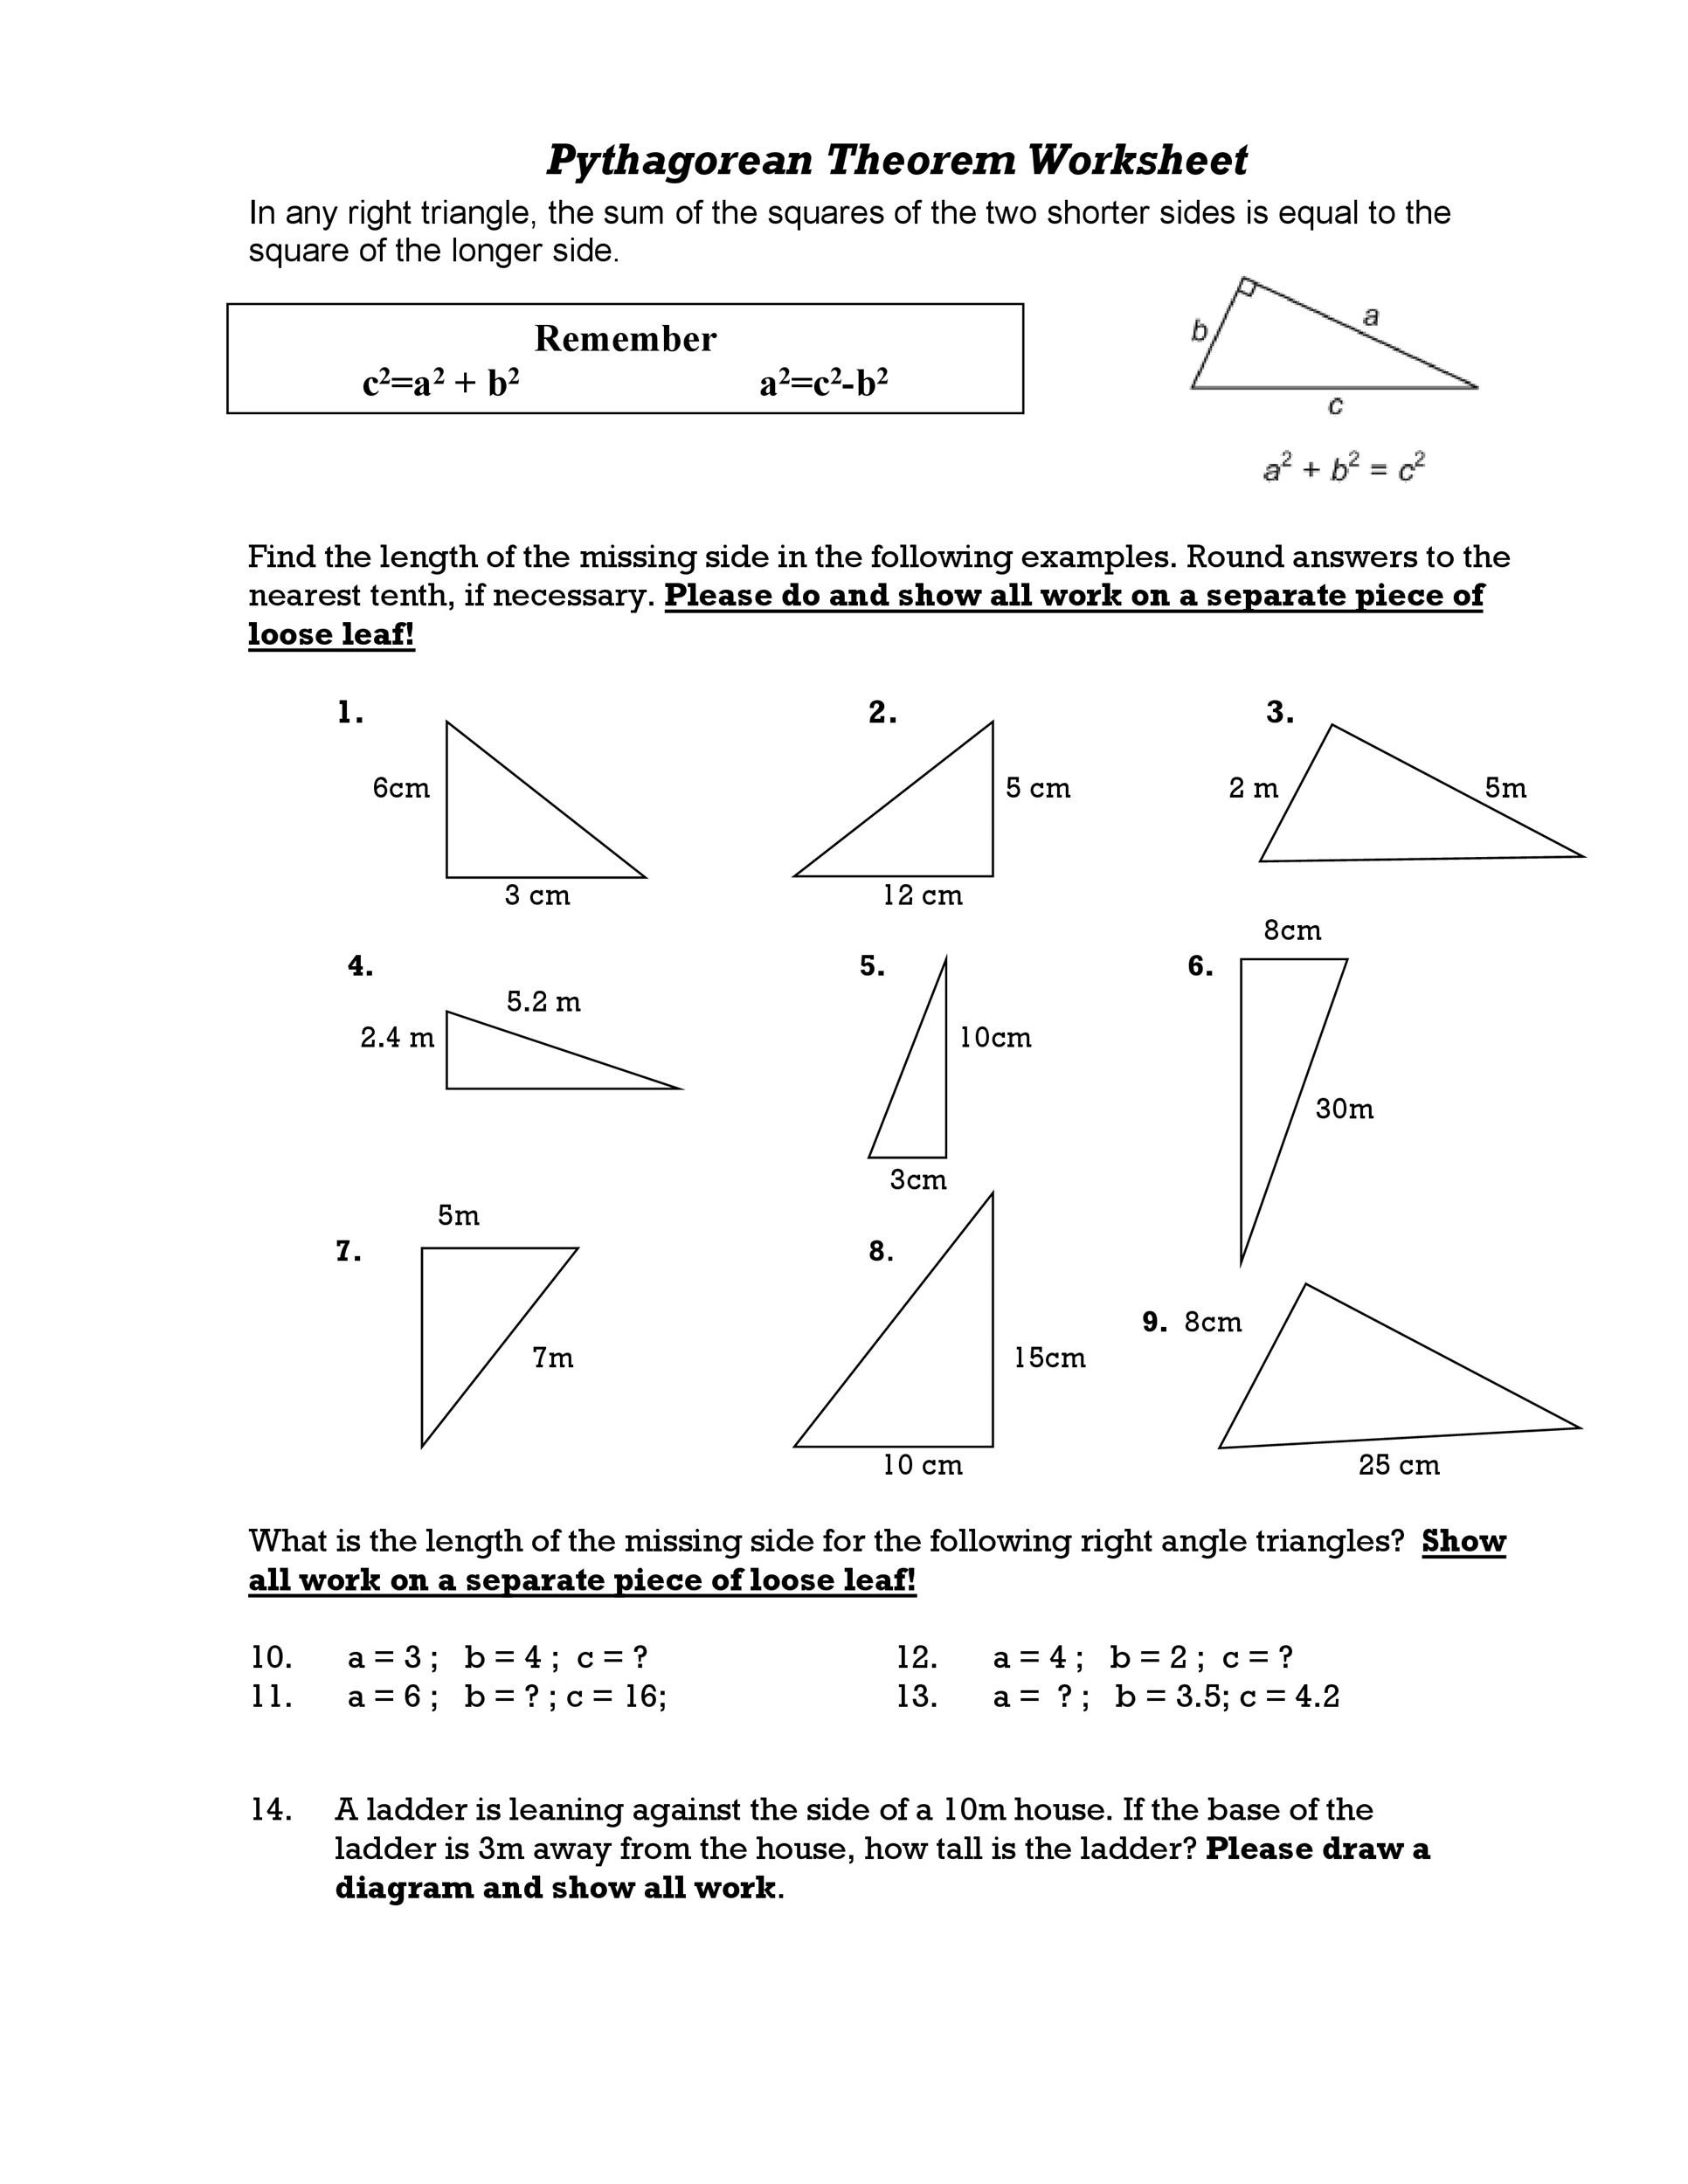 Pythagorean Theorem Assignment Worksheet Answers